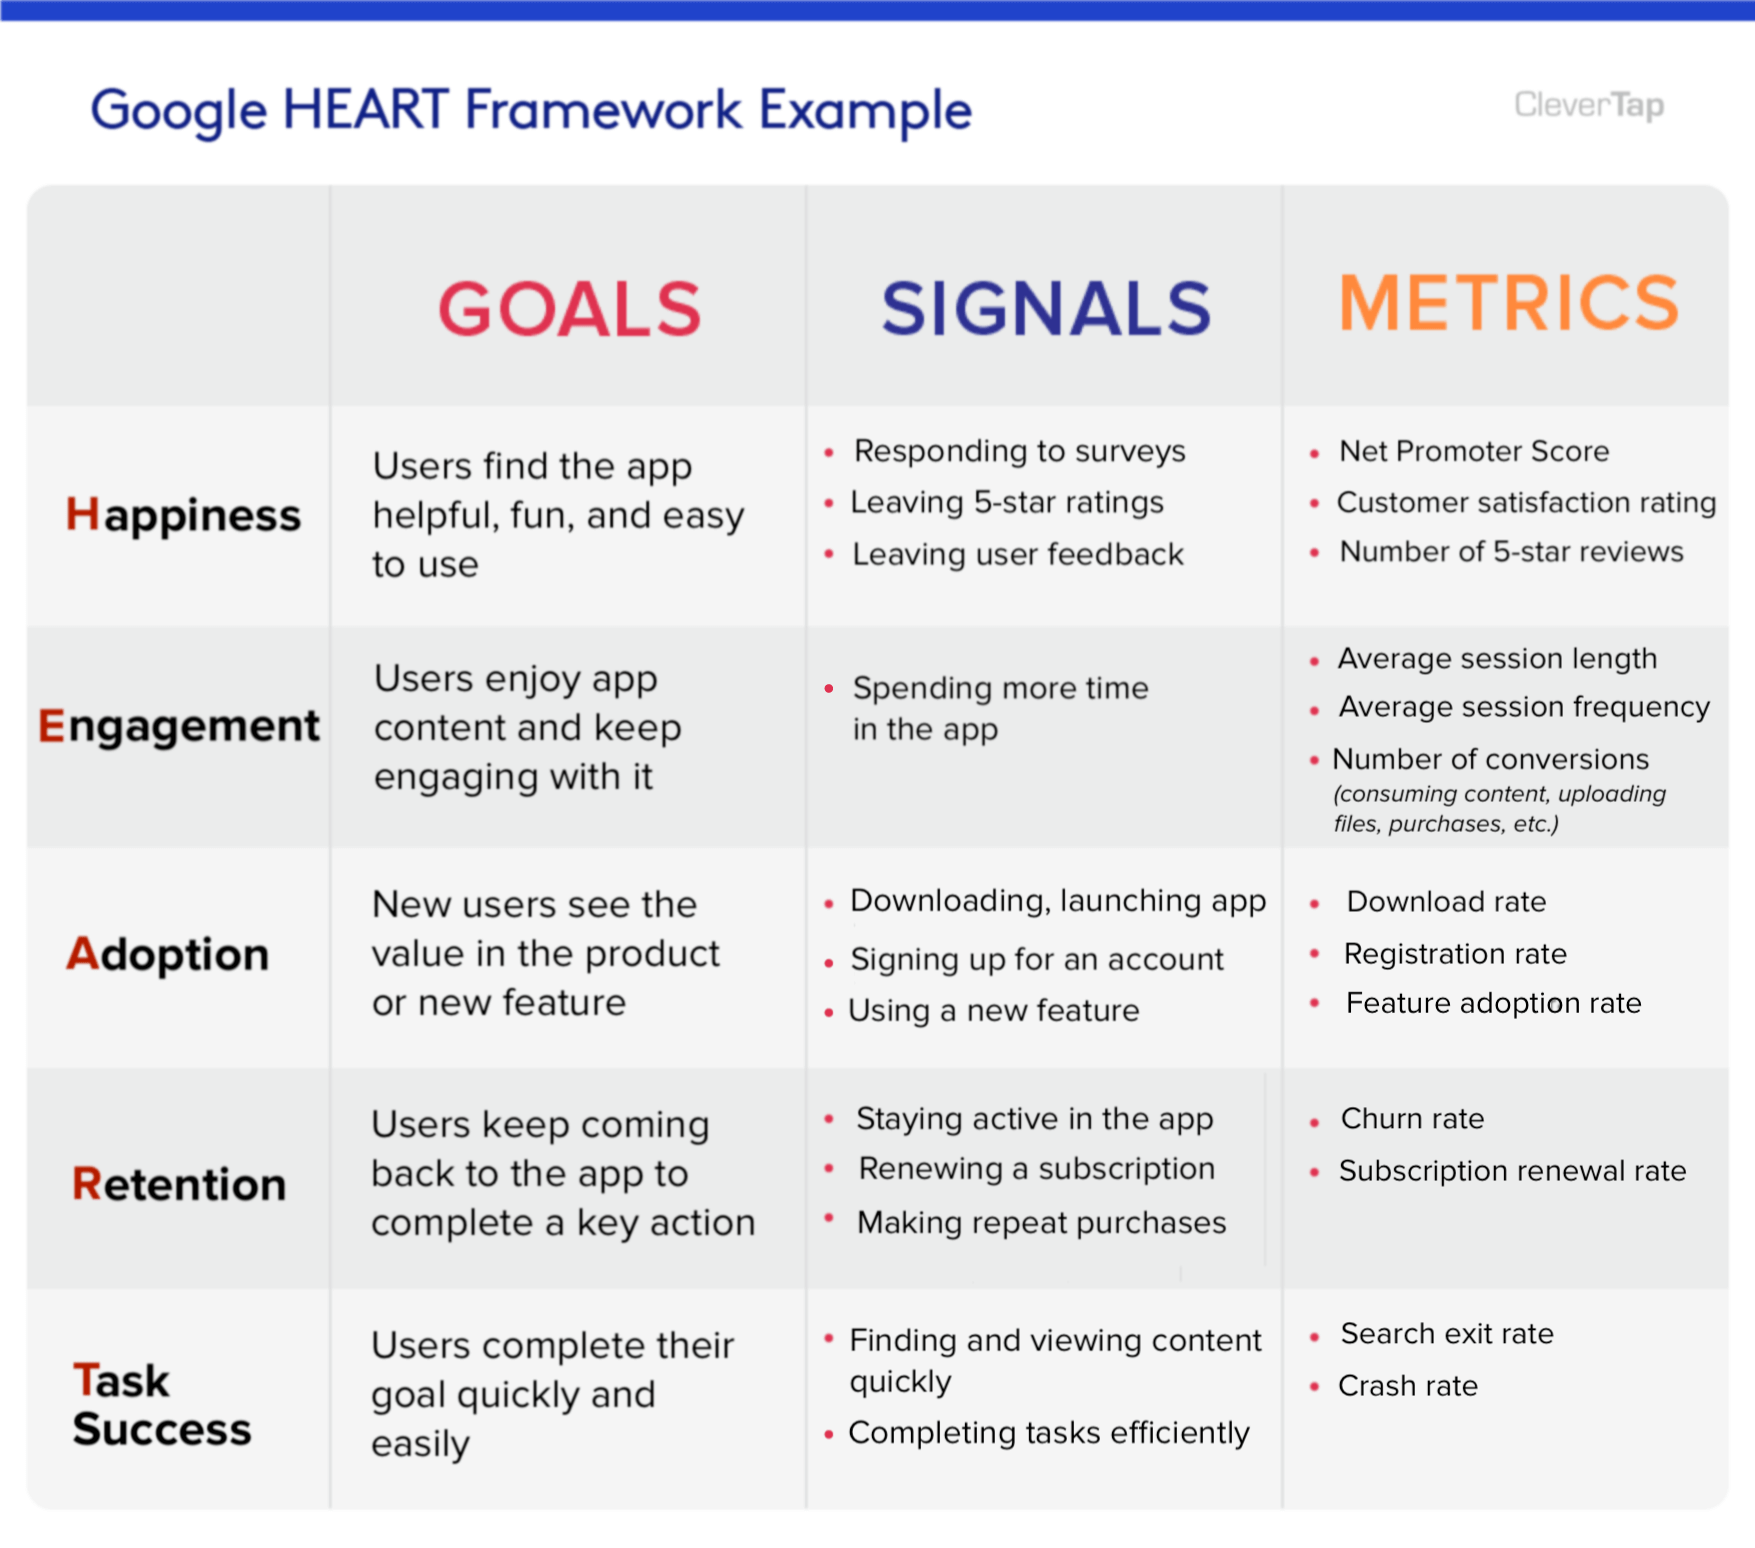 google heart framework example chart with goals, signals, and metrics for measuring UX